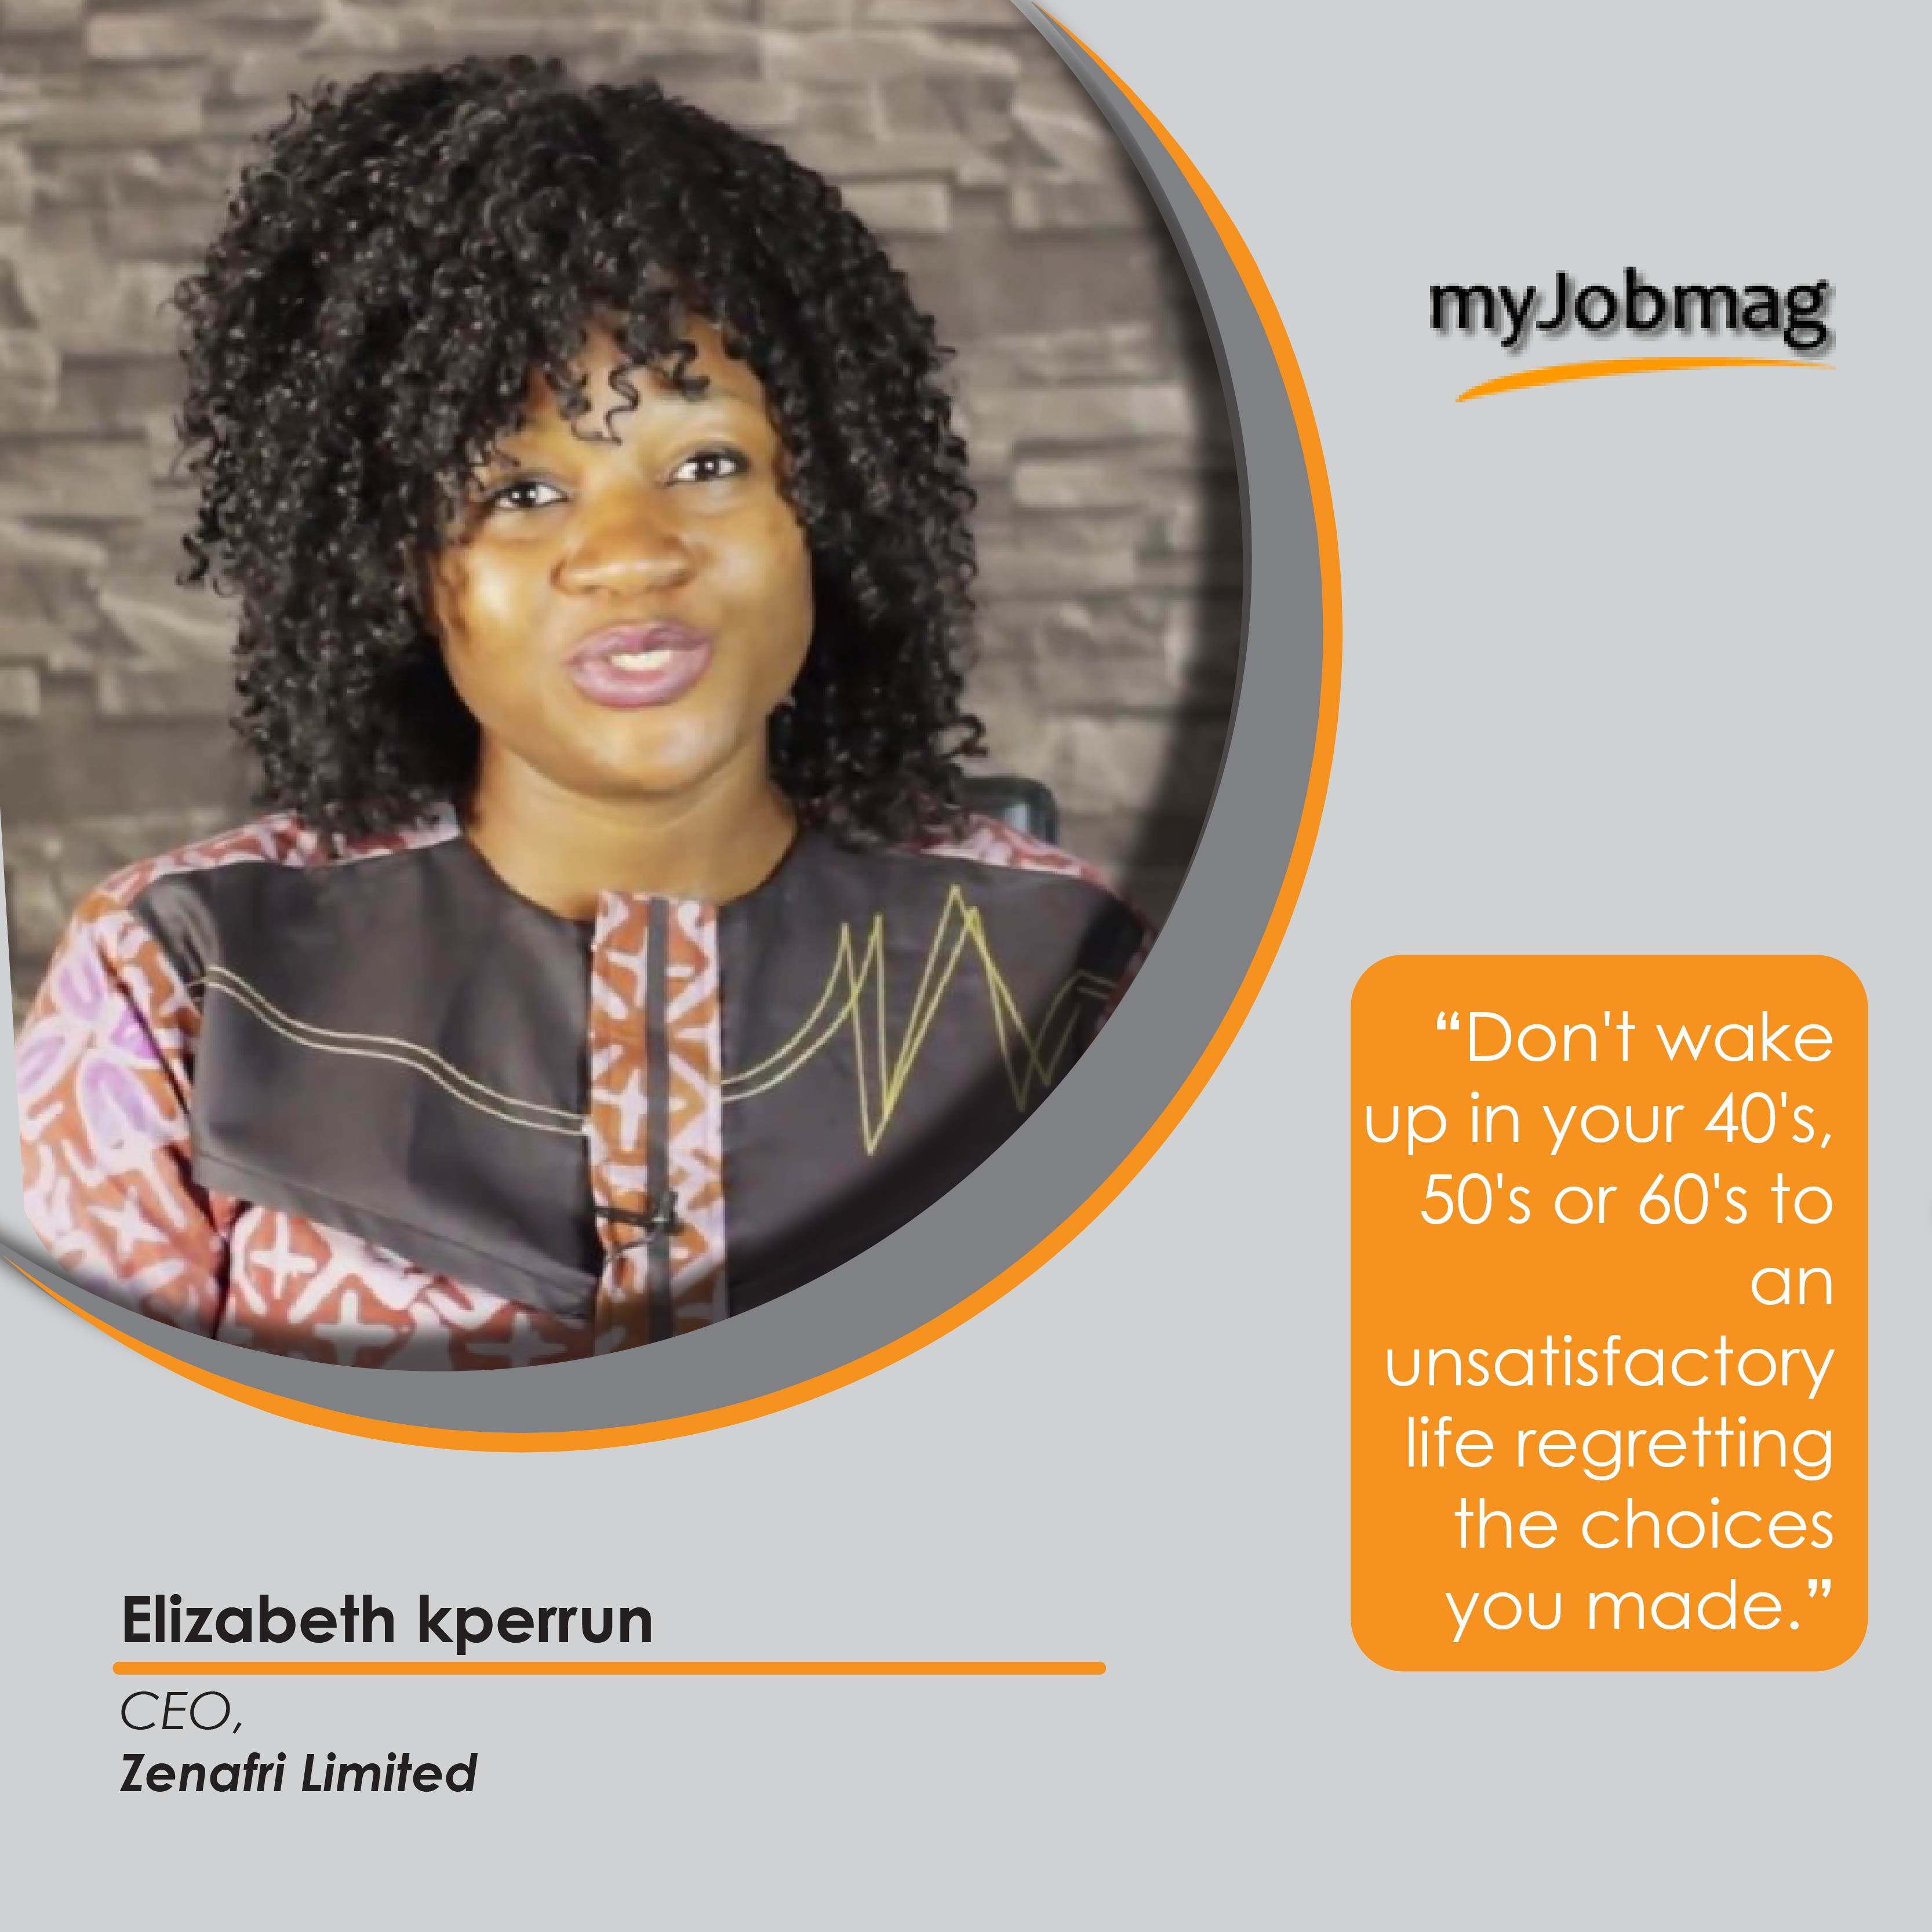 Elizabeth Kperrun career advice MyJobMag